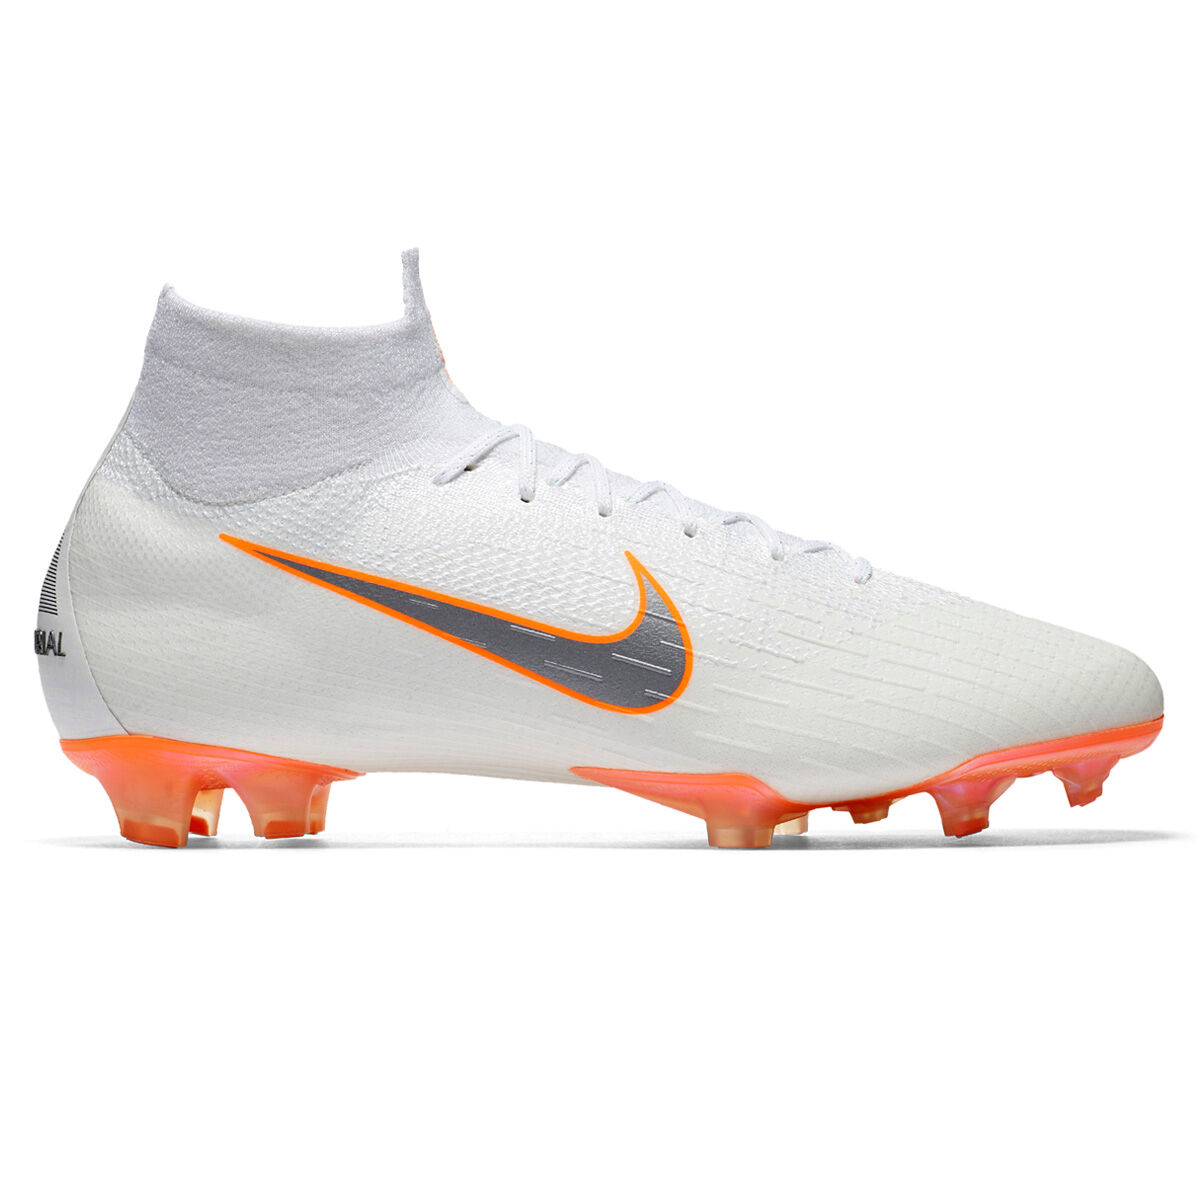 cheaper 66994 588a2 ... fg white gold shoes ee0e6 5fcf8  reduced nike mercurial superfly vi  elite mens football boots white grey us 13 white 49aae f7bb8